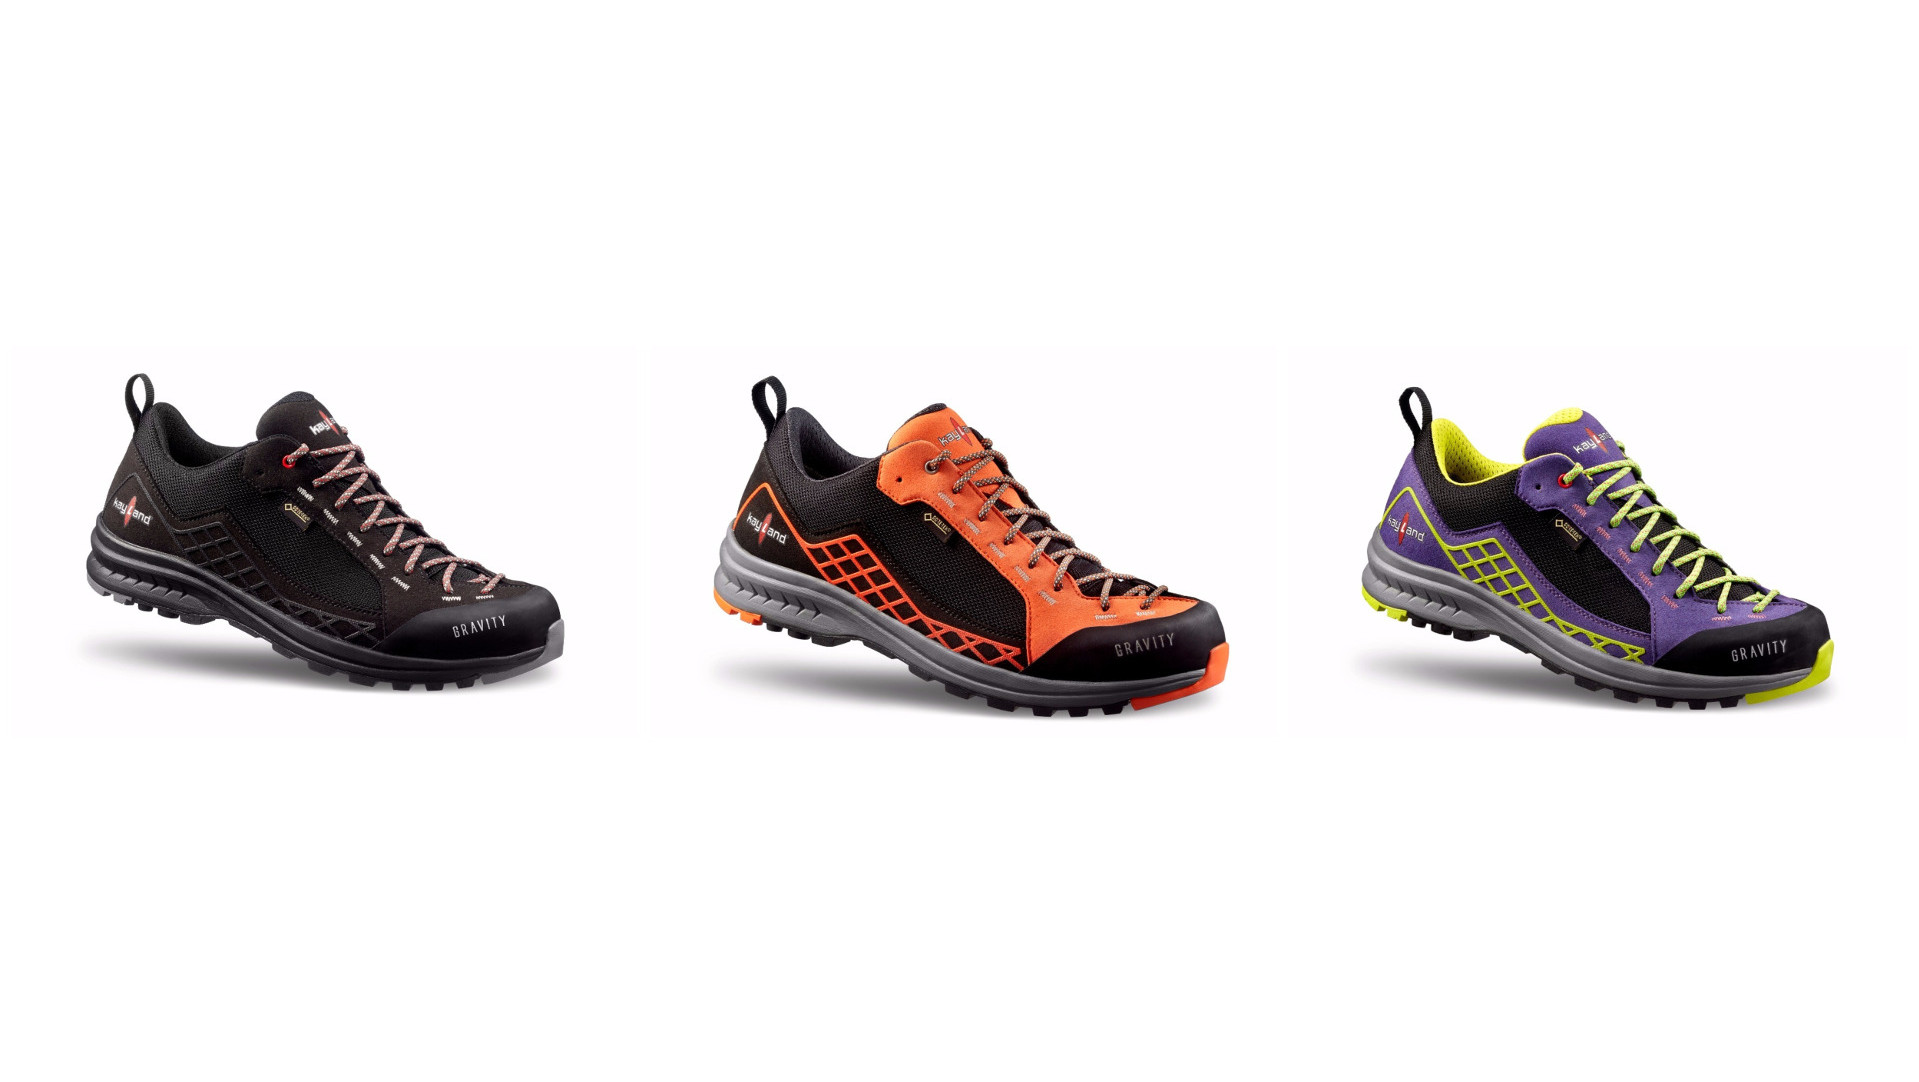 Gravity GTX Winter Release | Face the cold season with style and protection